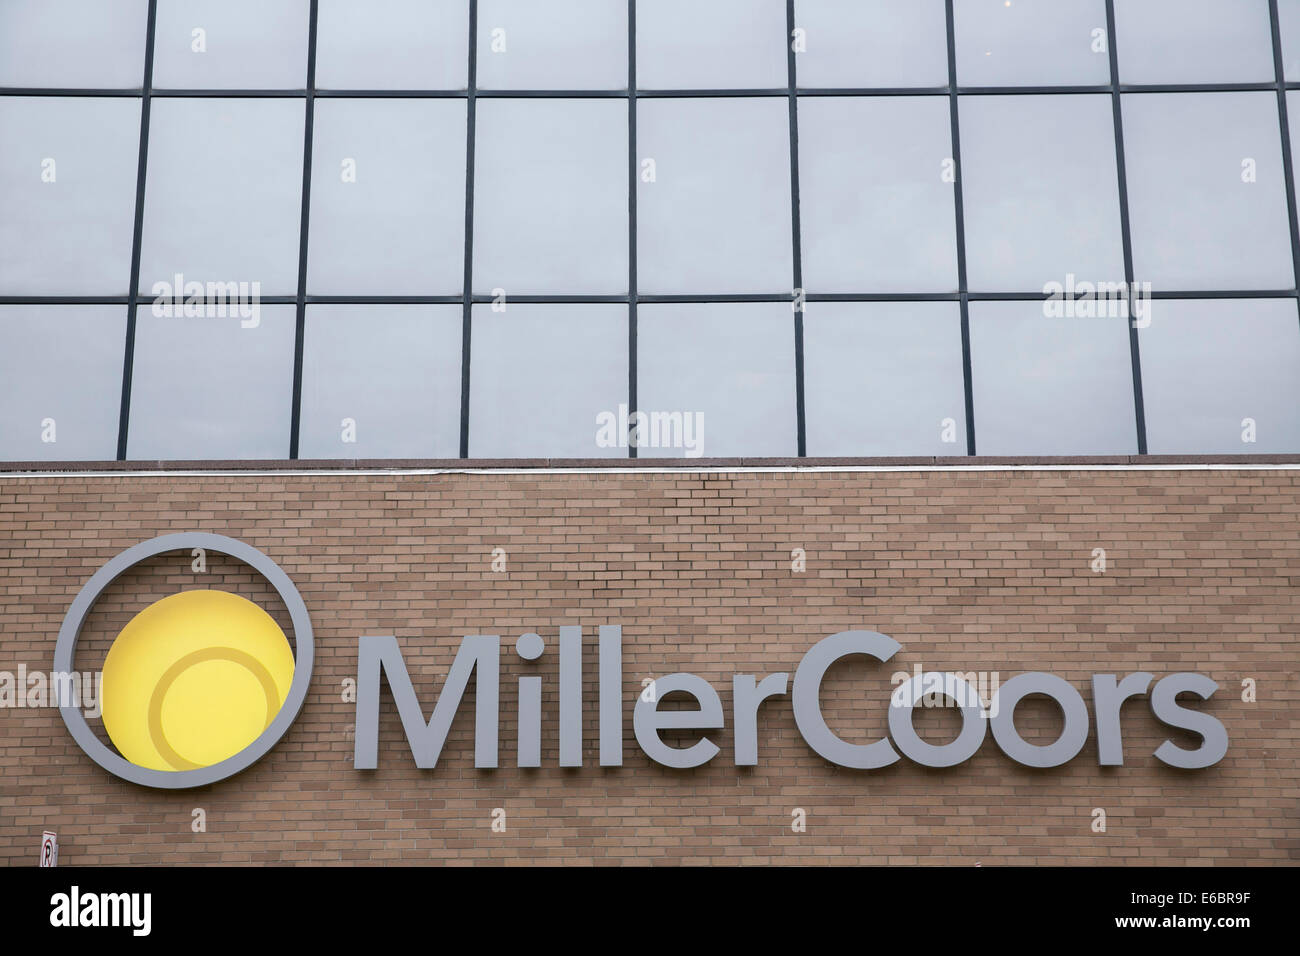 The MillerCoors brewery in Milwaukee, Wisconsin. - Stock Image